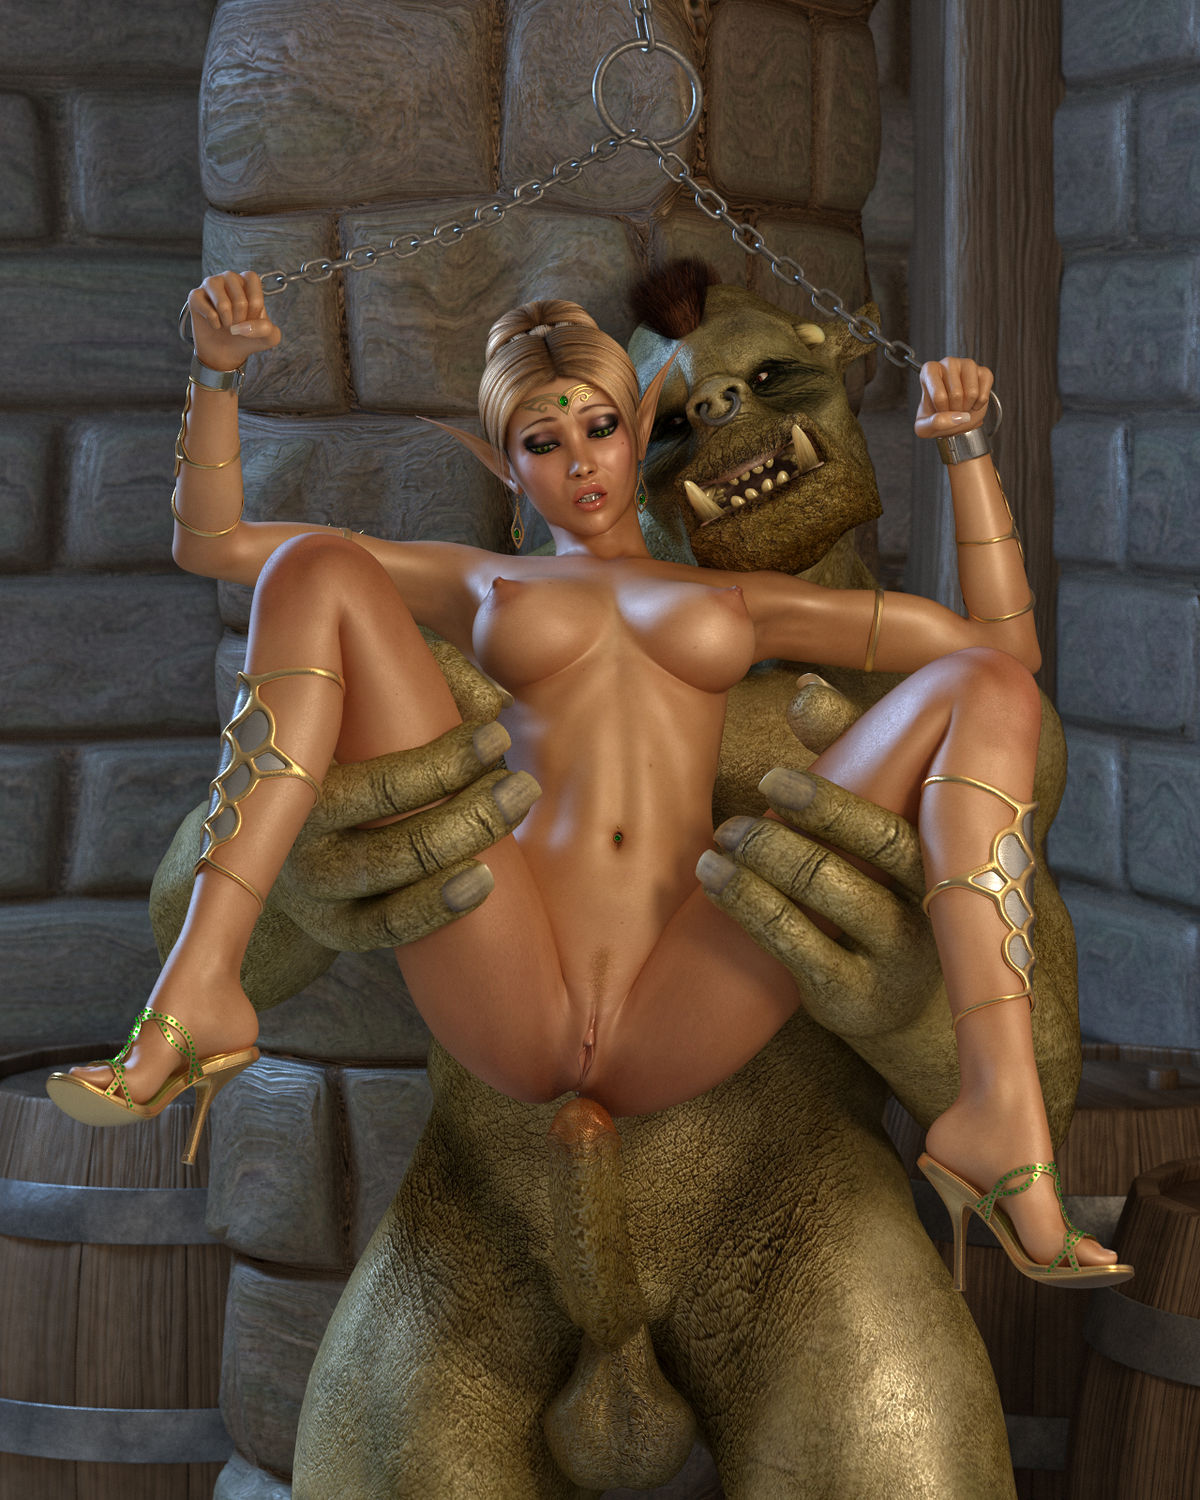 Ork and elfporn hentai pictures